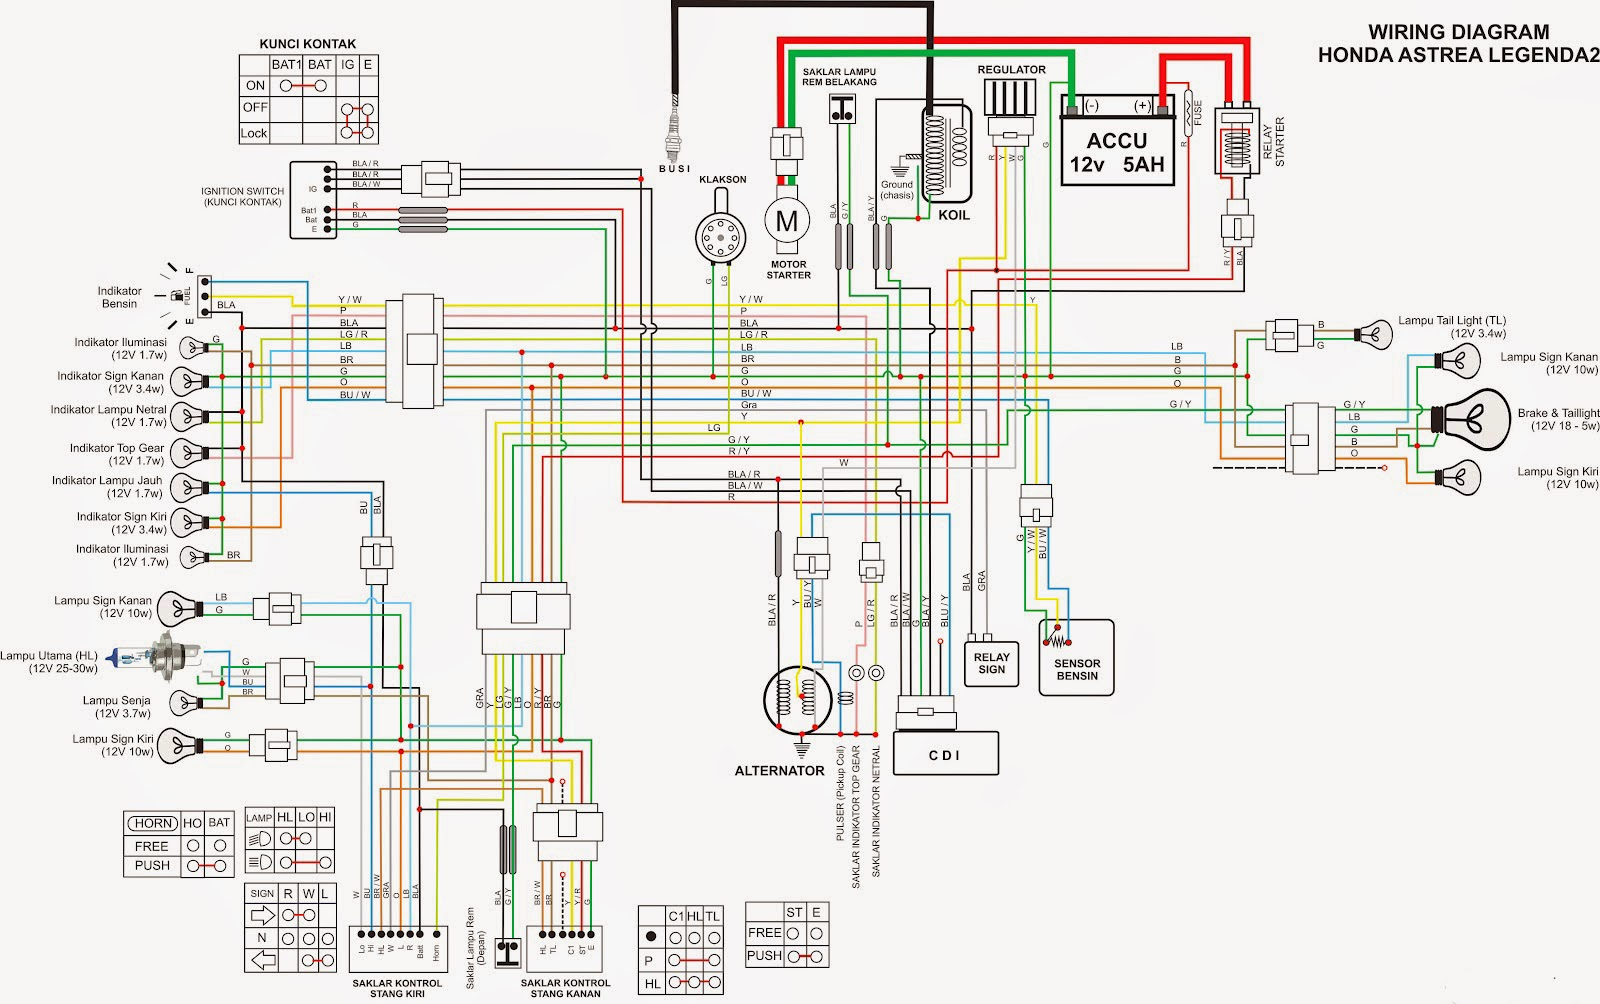 jupier z1 wiring diagram wiring diagram yer jupier z1 wiring diagram source wiring diagram jupiter z  [ 1600 x 1004 Pixel ]